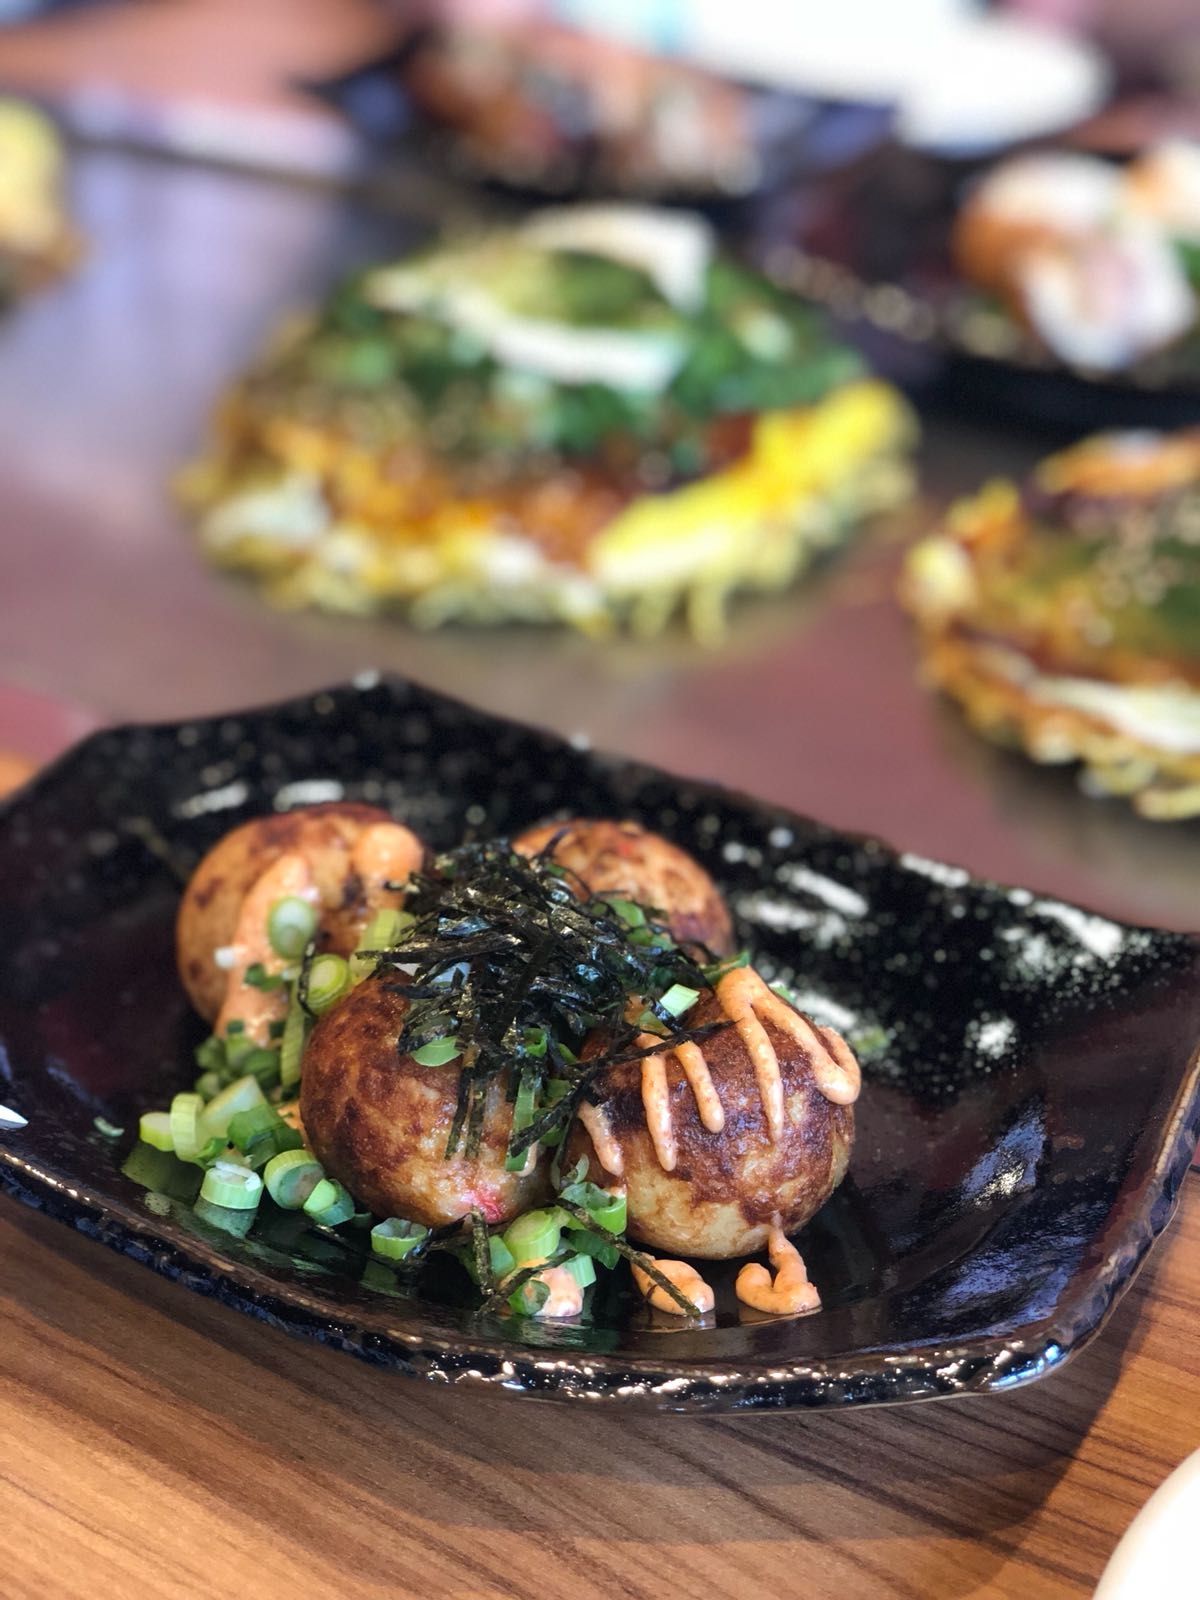 The original takoyaki from Takotaki Tanota.